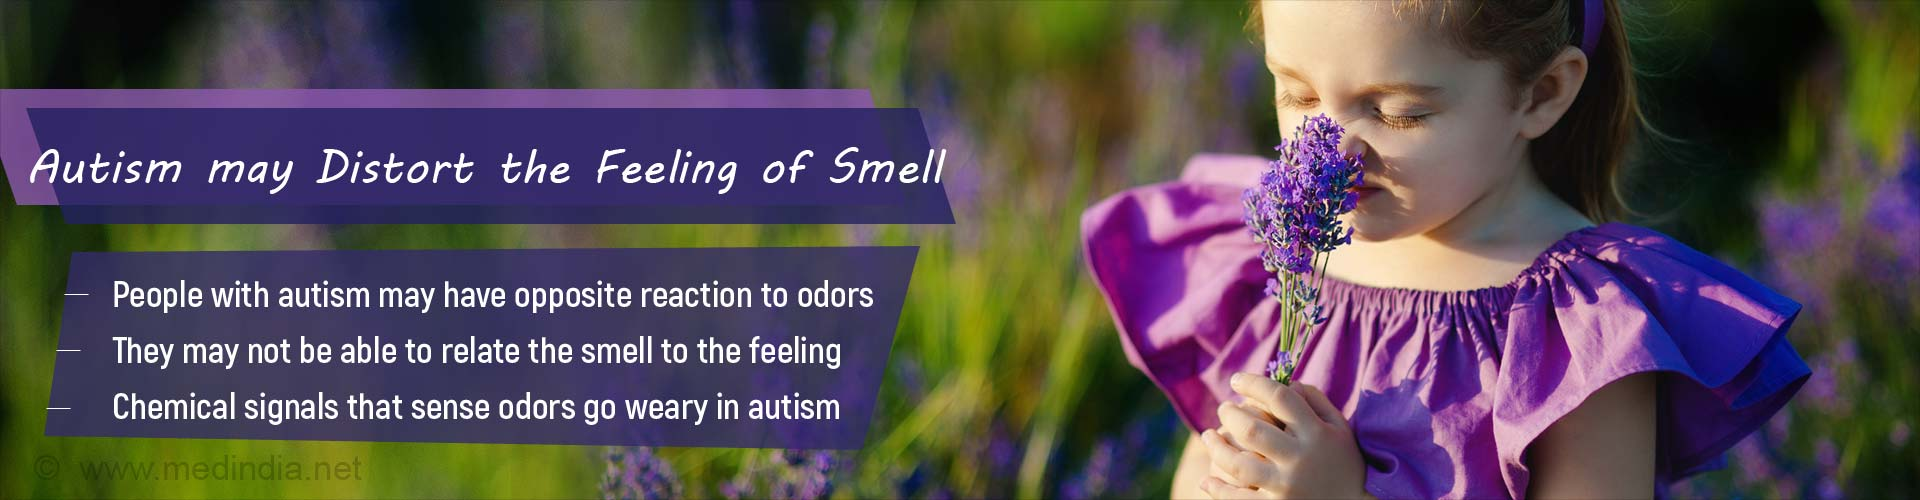 Autism Spectrum Disorder May Hamper the Feeling of Smell